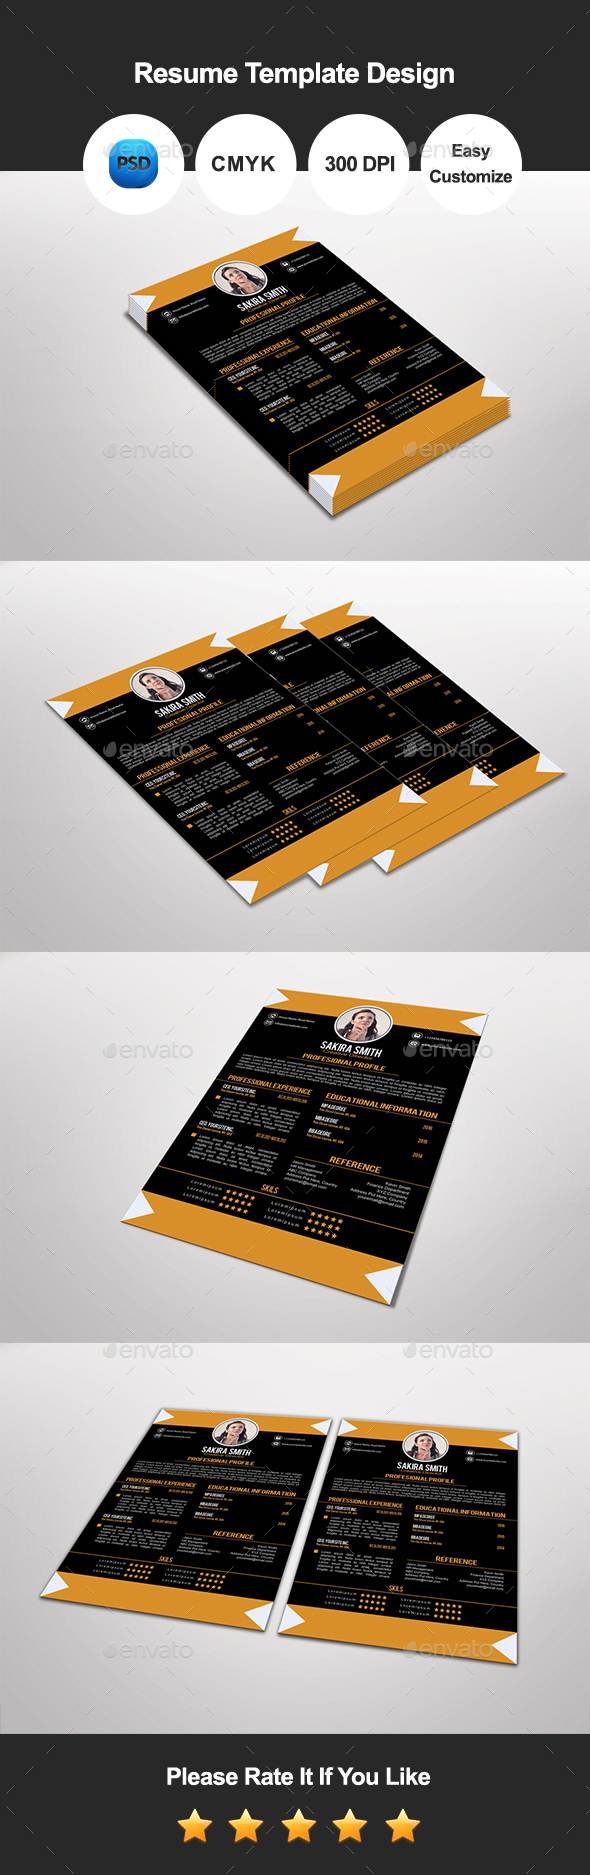 Libani Resume Template Design - Resumes Stationery